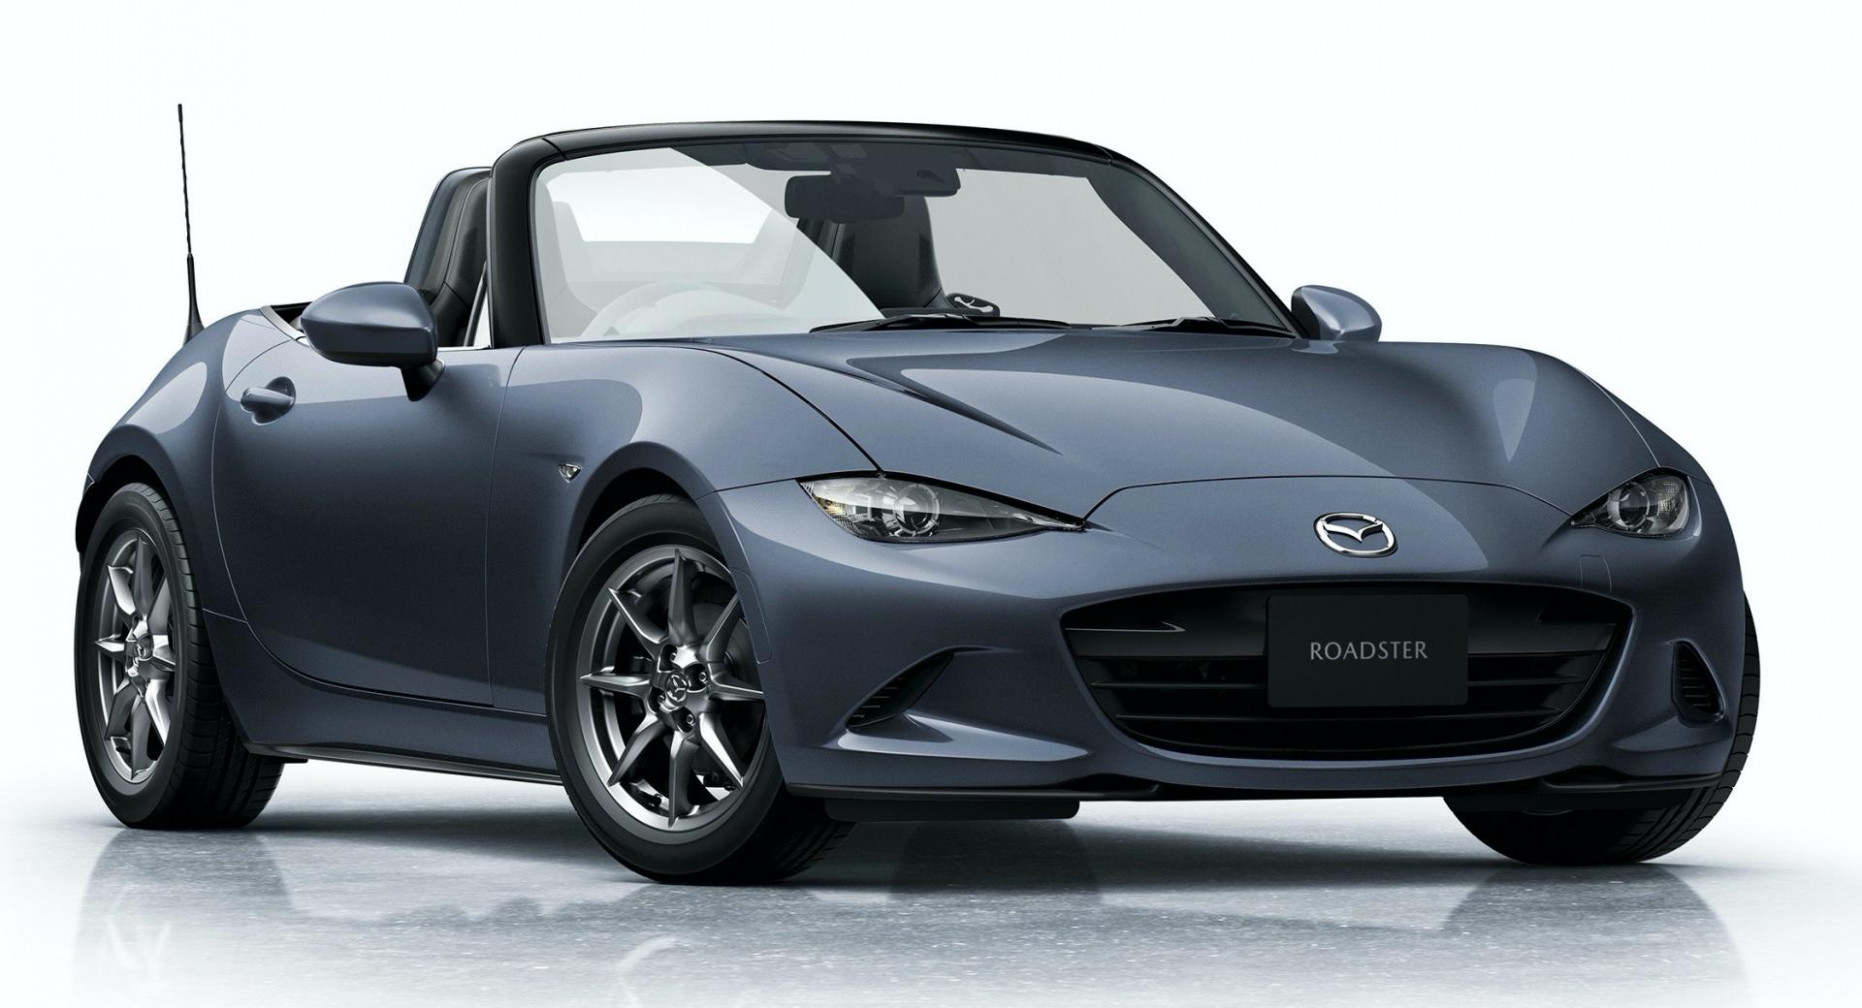 6 Mazda MX-6 Miata gains several interesting updates - Drivers ...